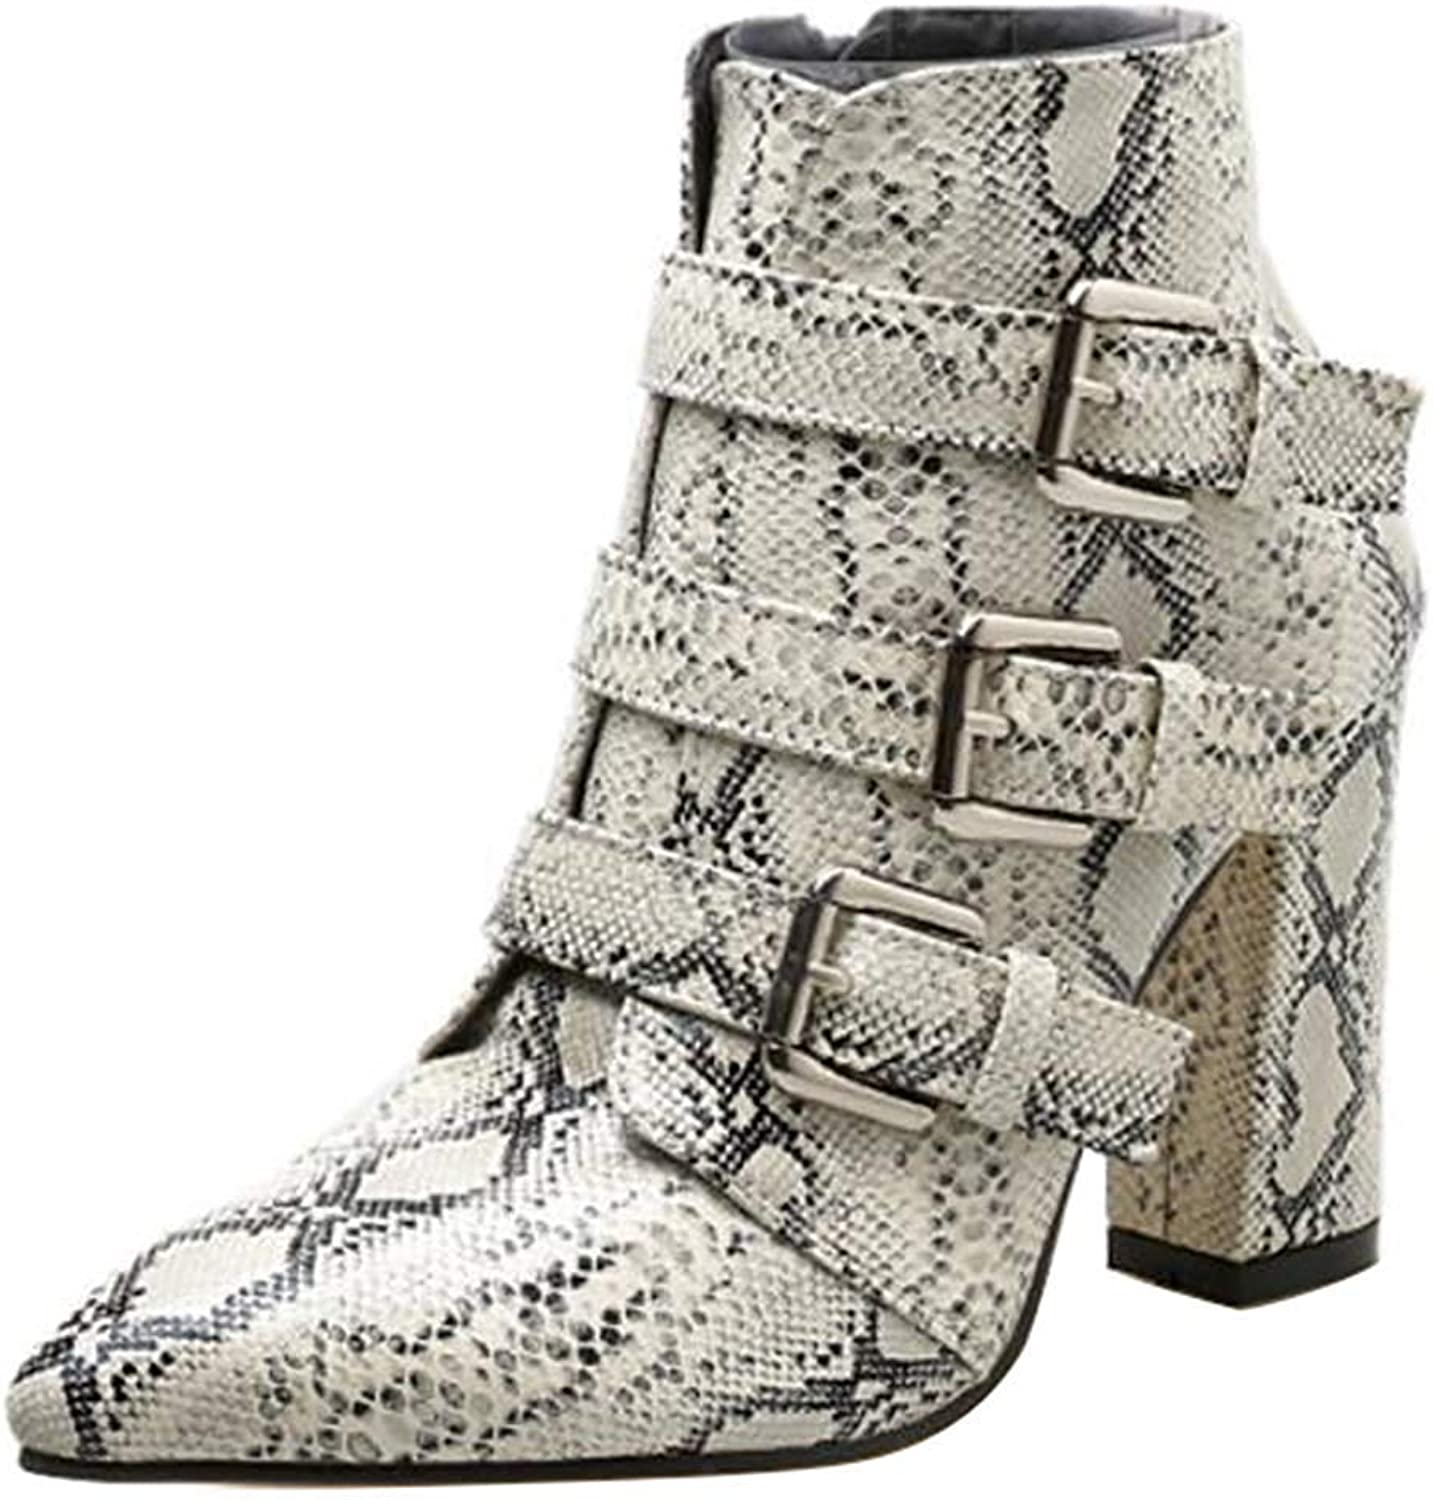 Lelehwhge Women's Sexy Print Buckle Strap Booties Pointed Toe High Block Heel Side Zipper Ankle Boots Snakeskin 7 M US